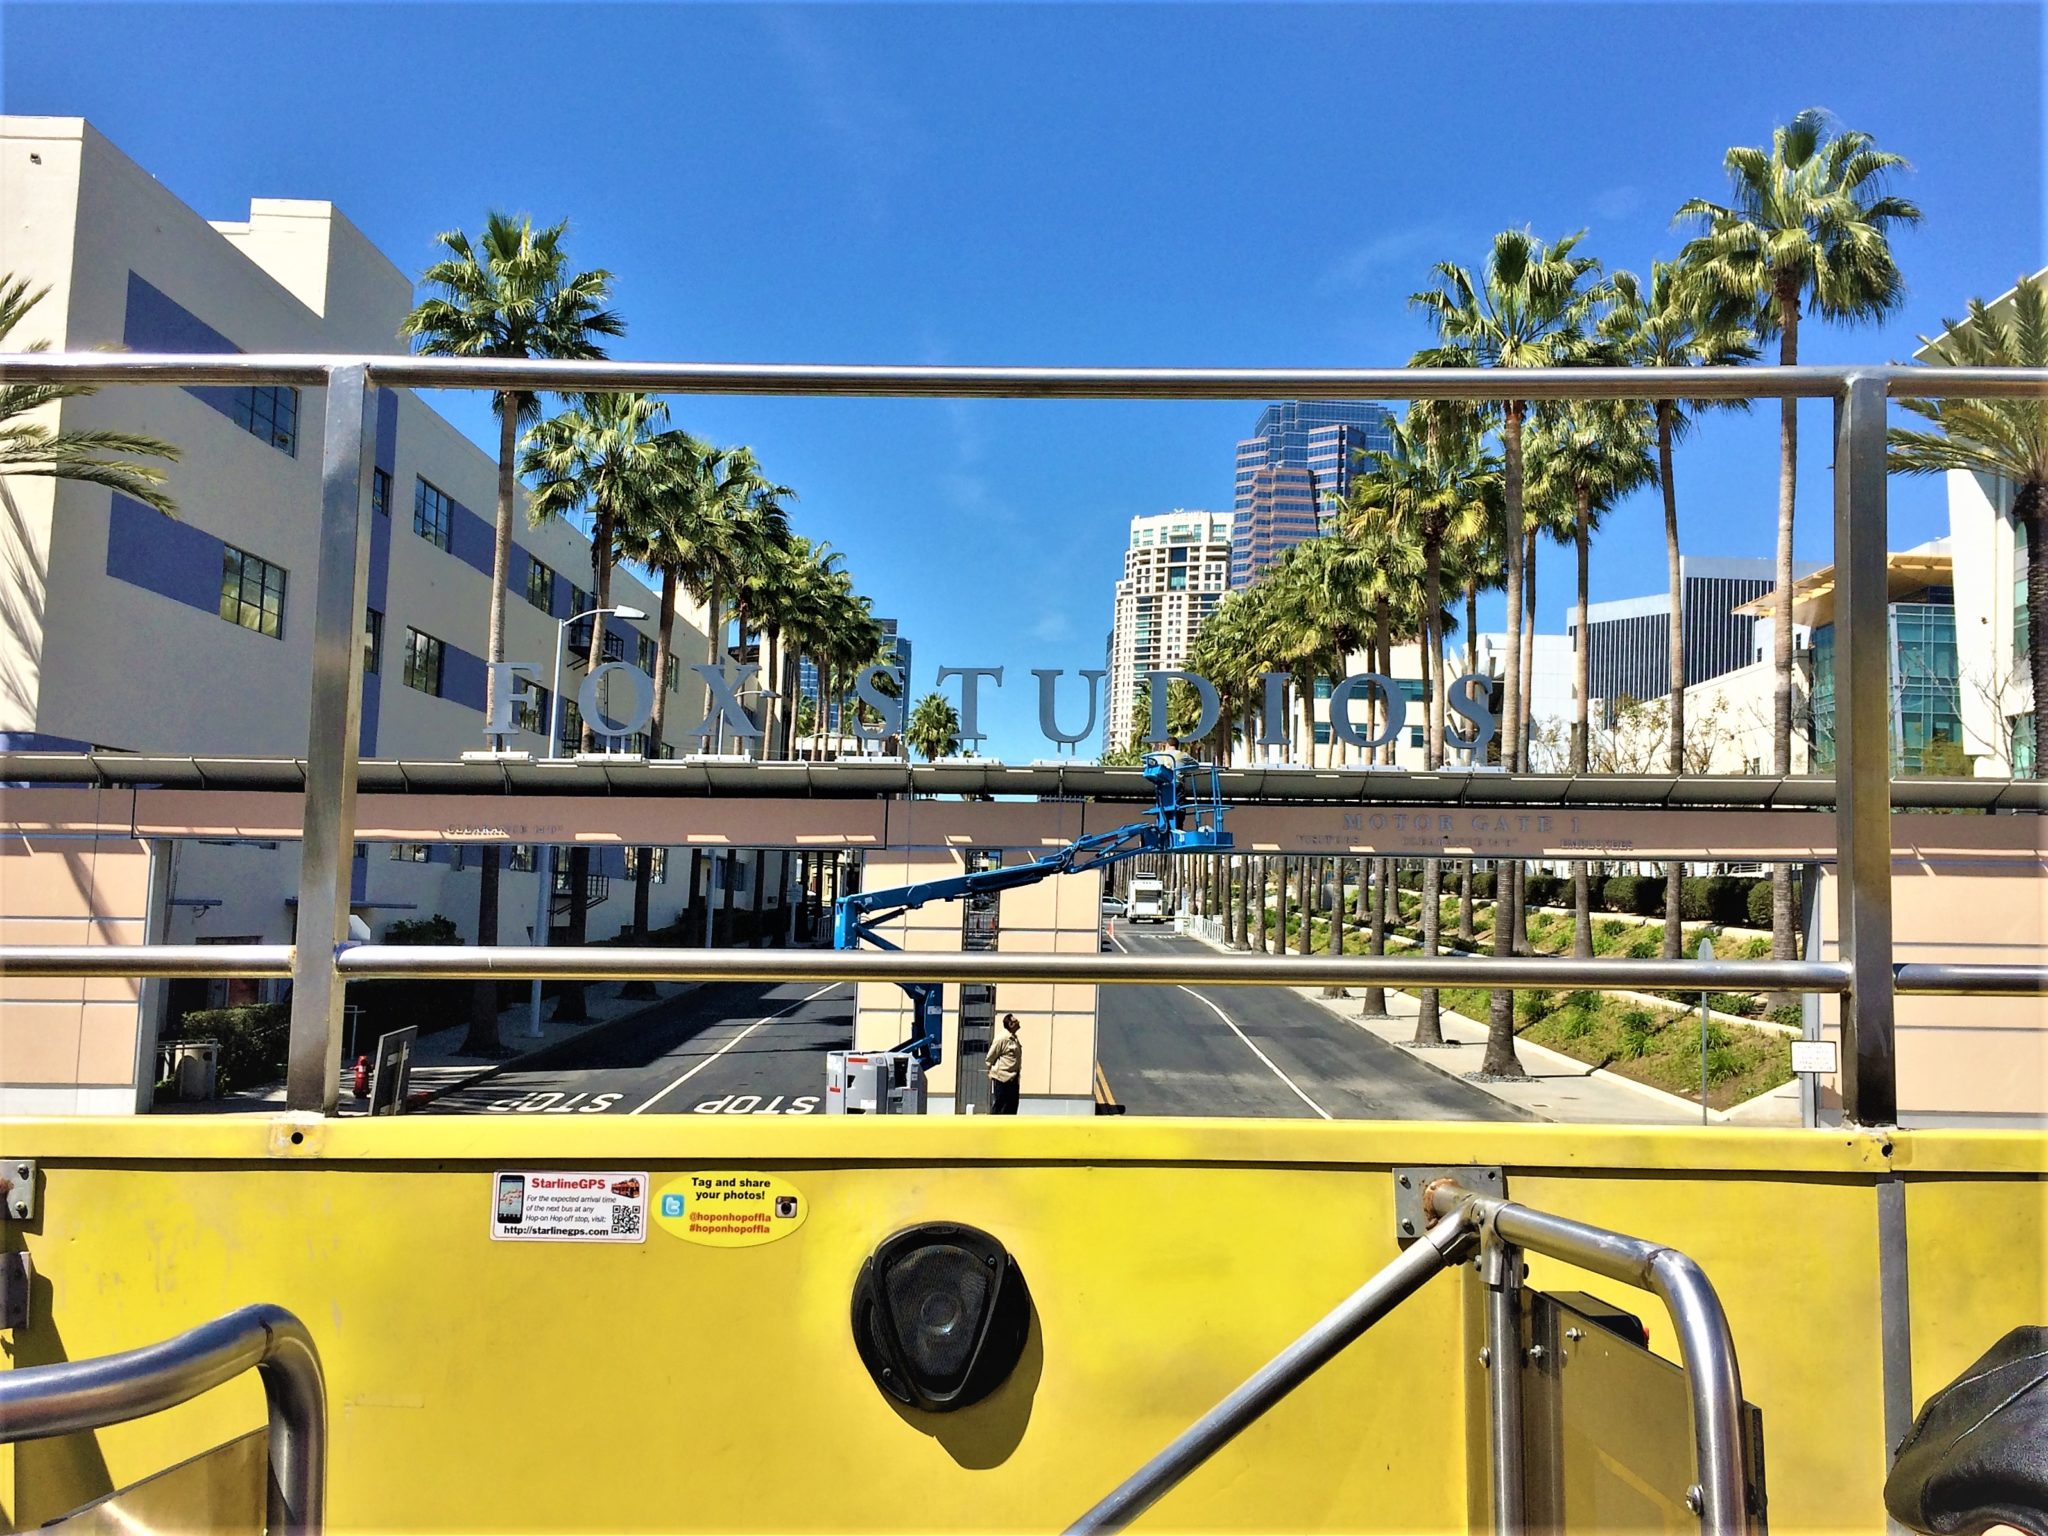 View of Fox Studios Los Angeles Hop on hop off bus, california